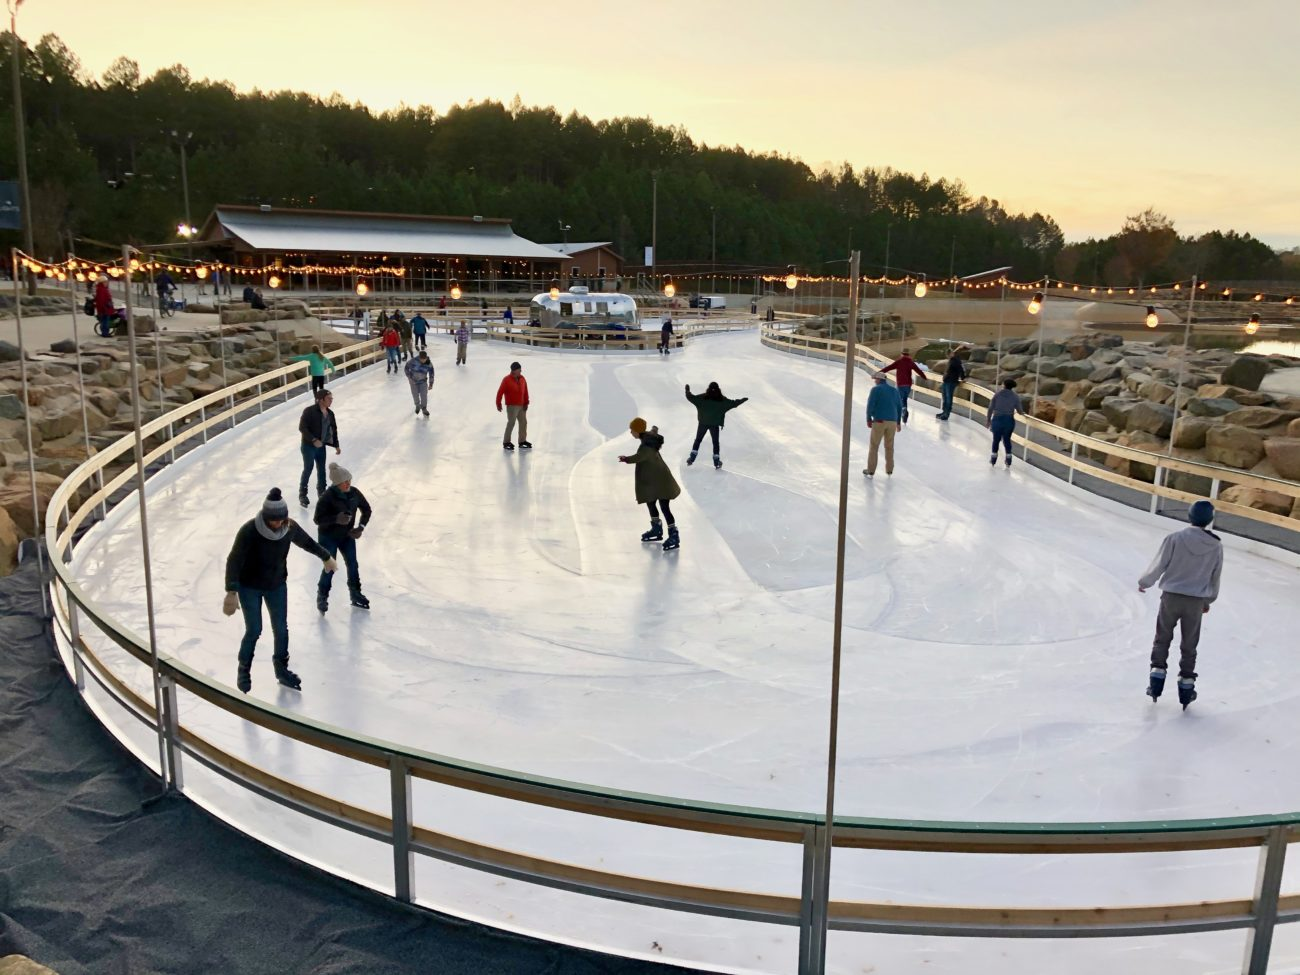 Agenda Weekender: 40 cool things to do this weekend in Charlotte including ice skating at the Whitewater Center